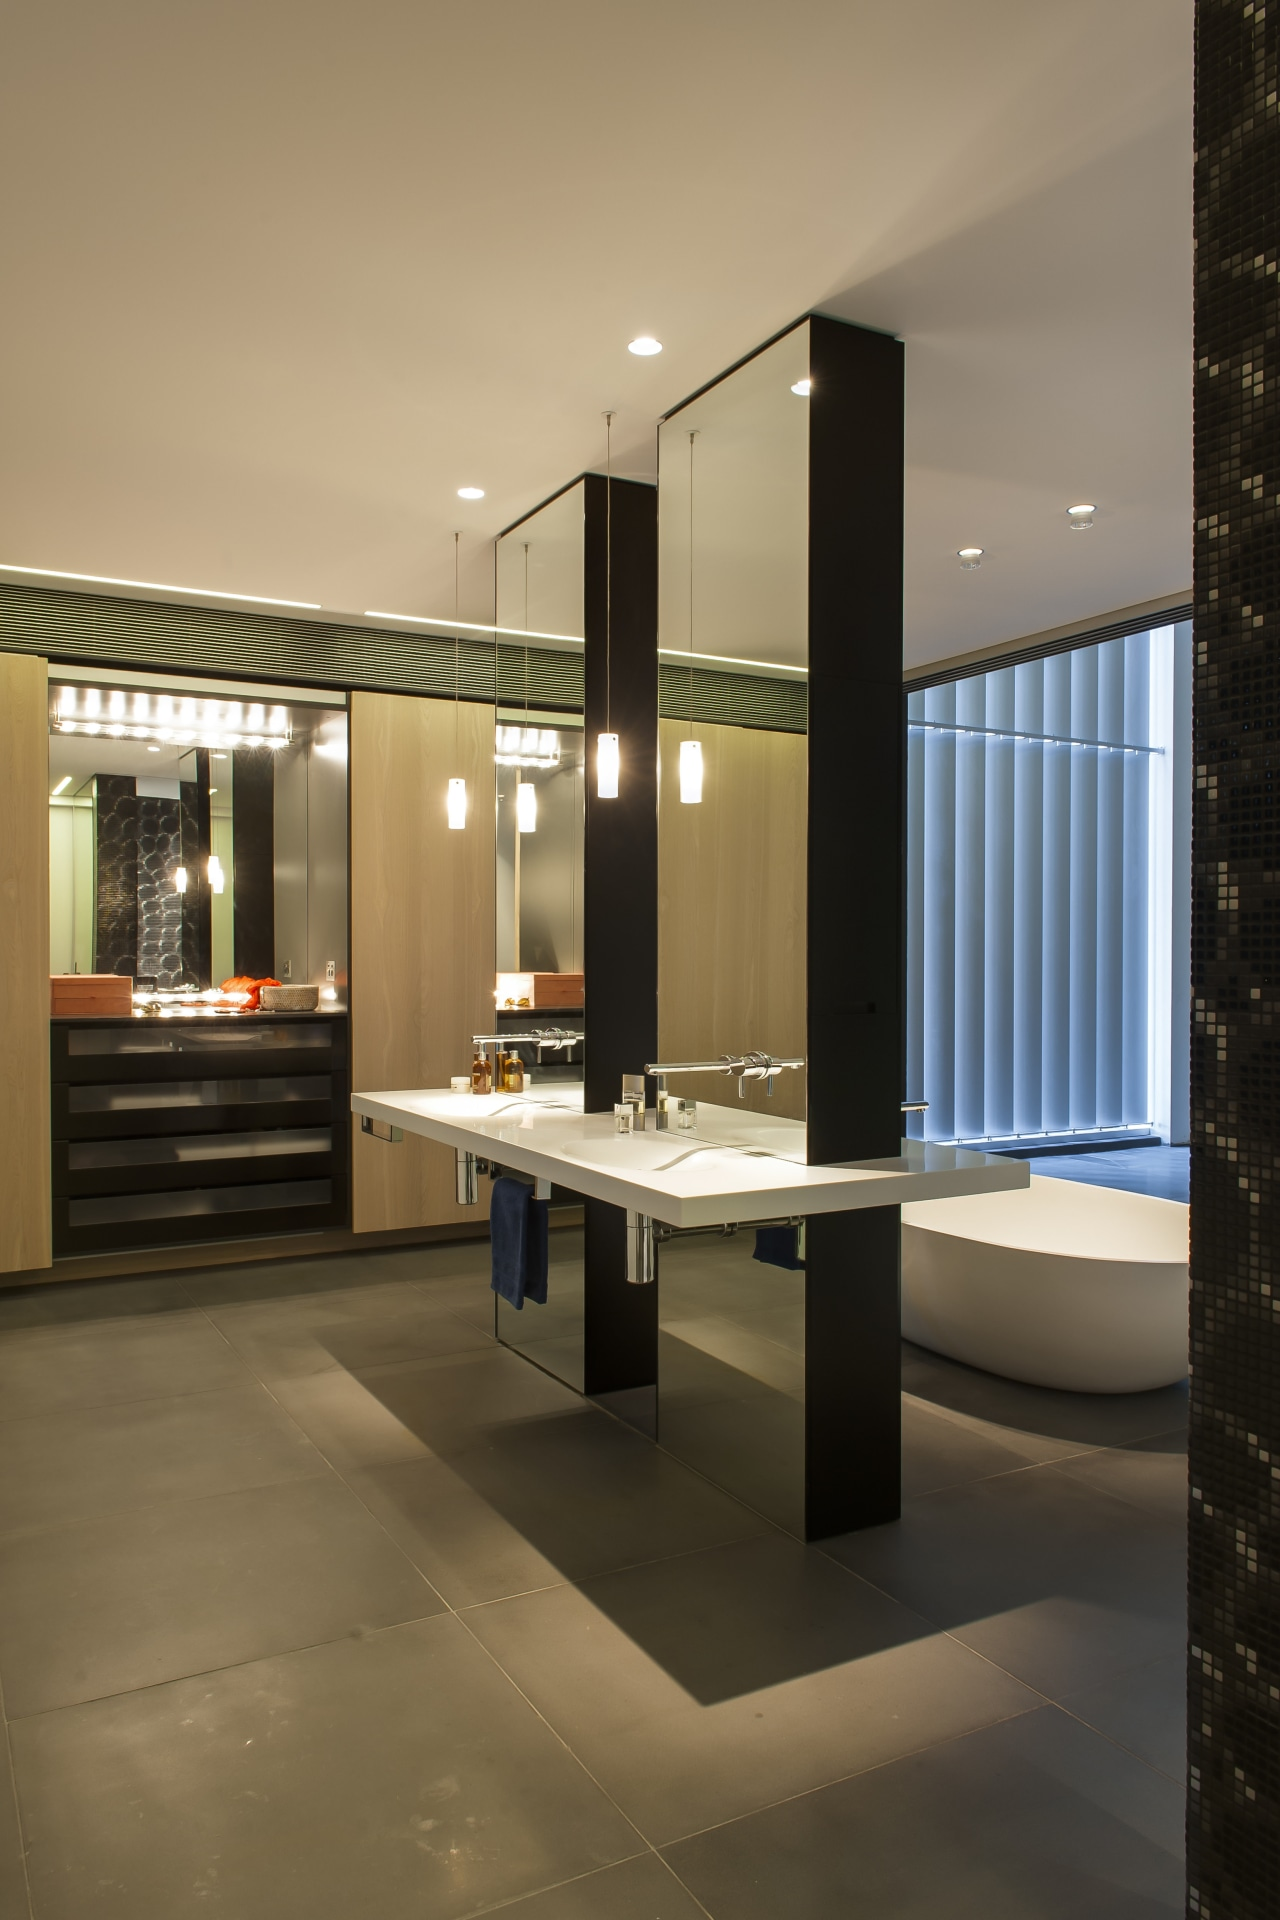 HIA bathroom design of the year architecture, interior design, lobby, brown, black